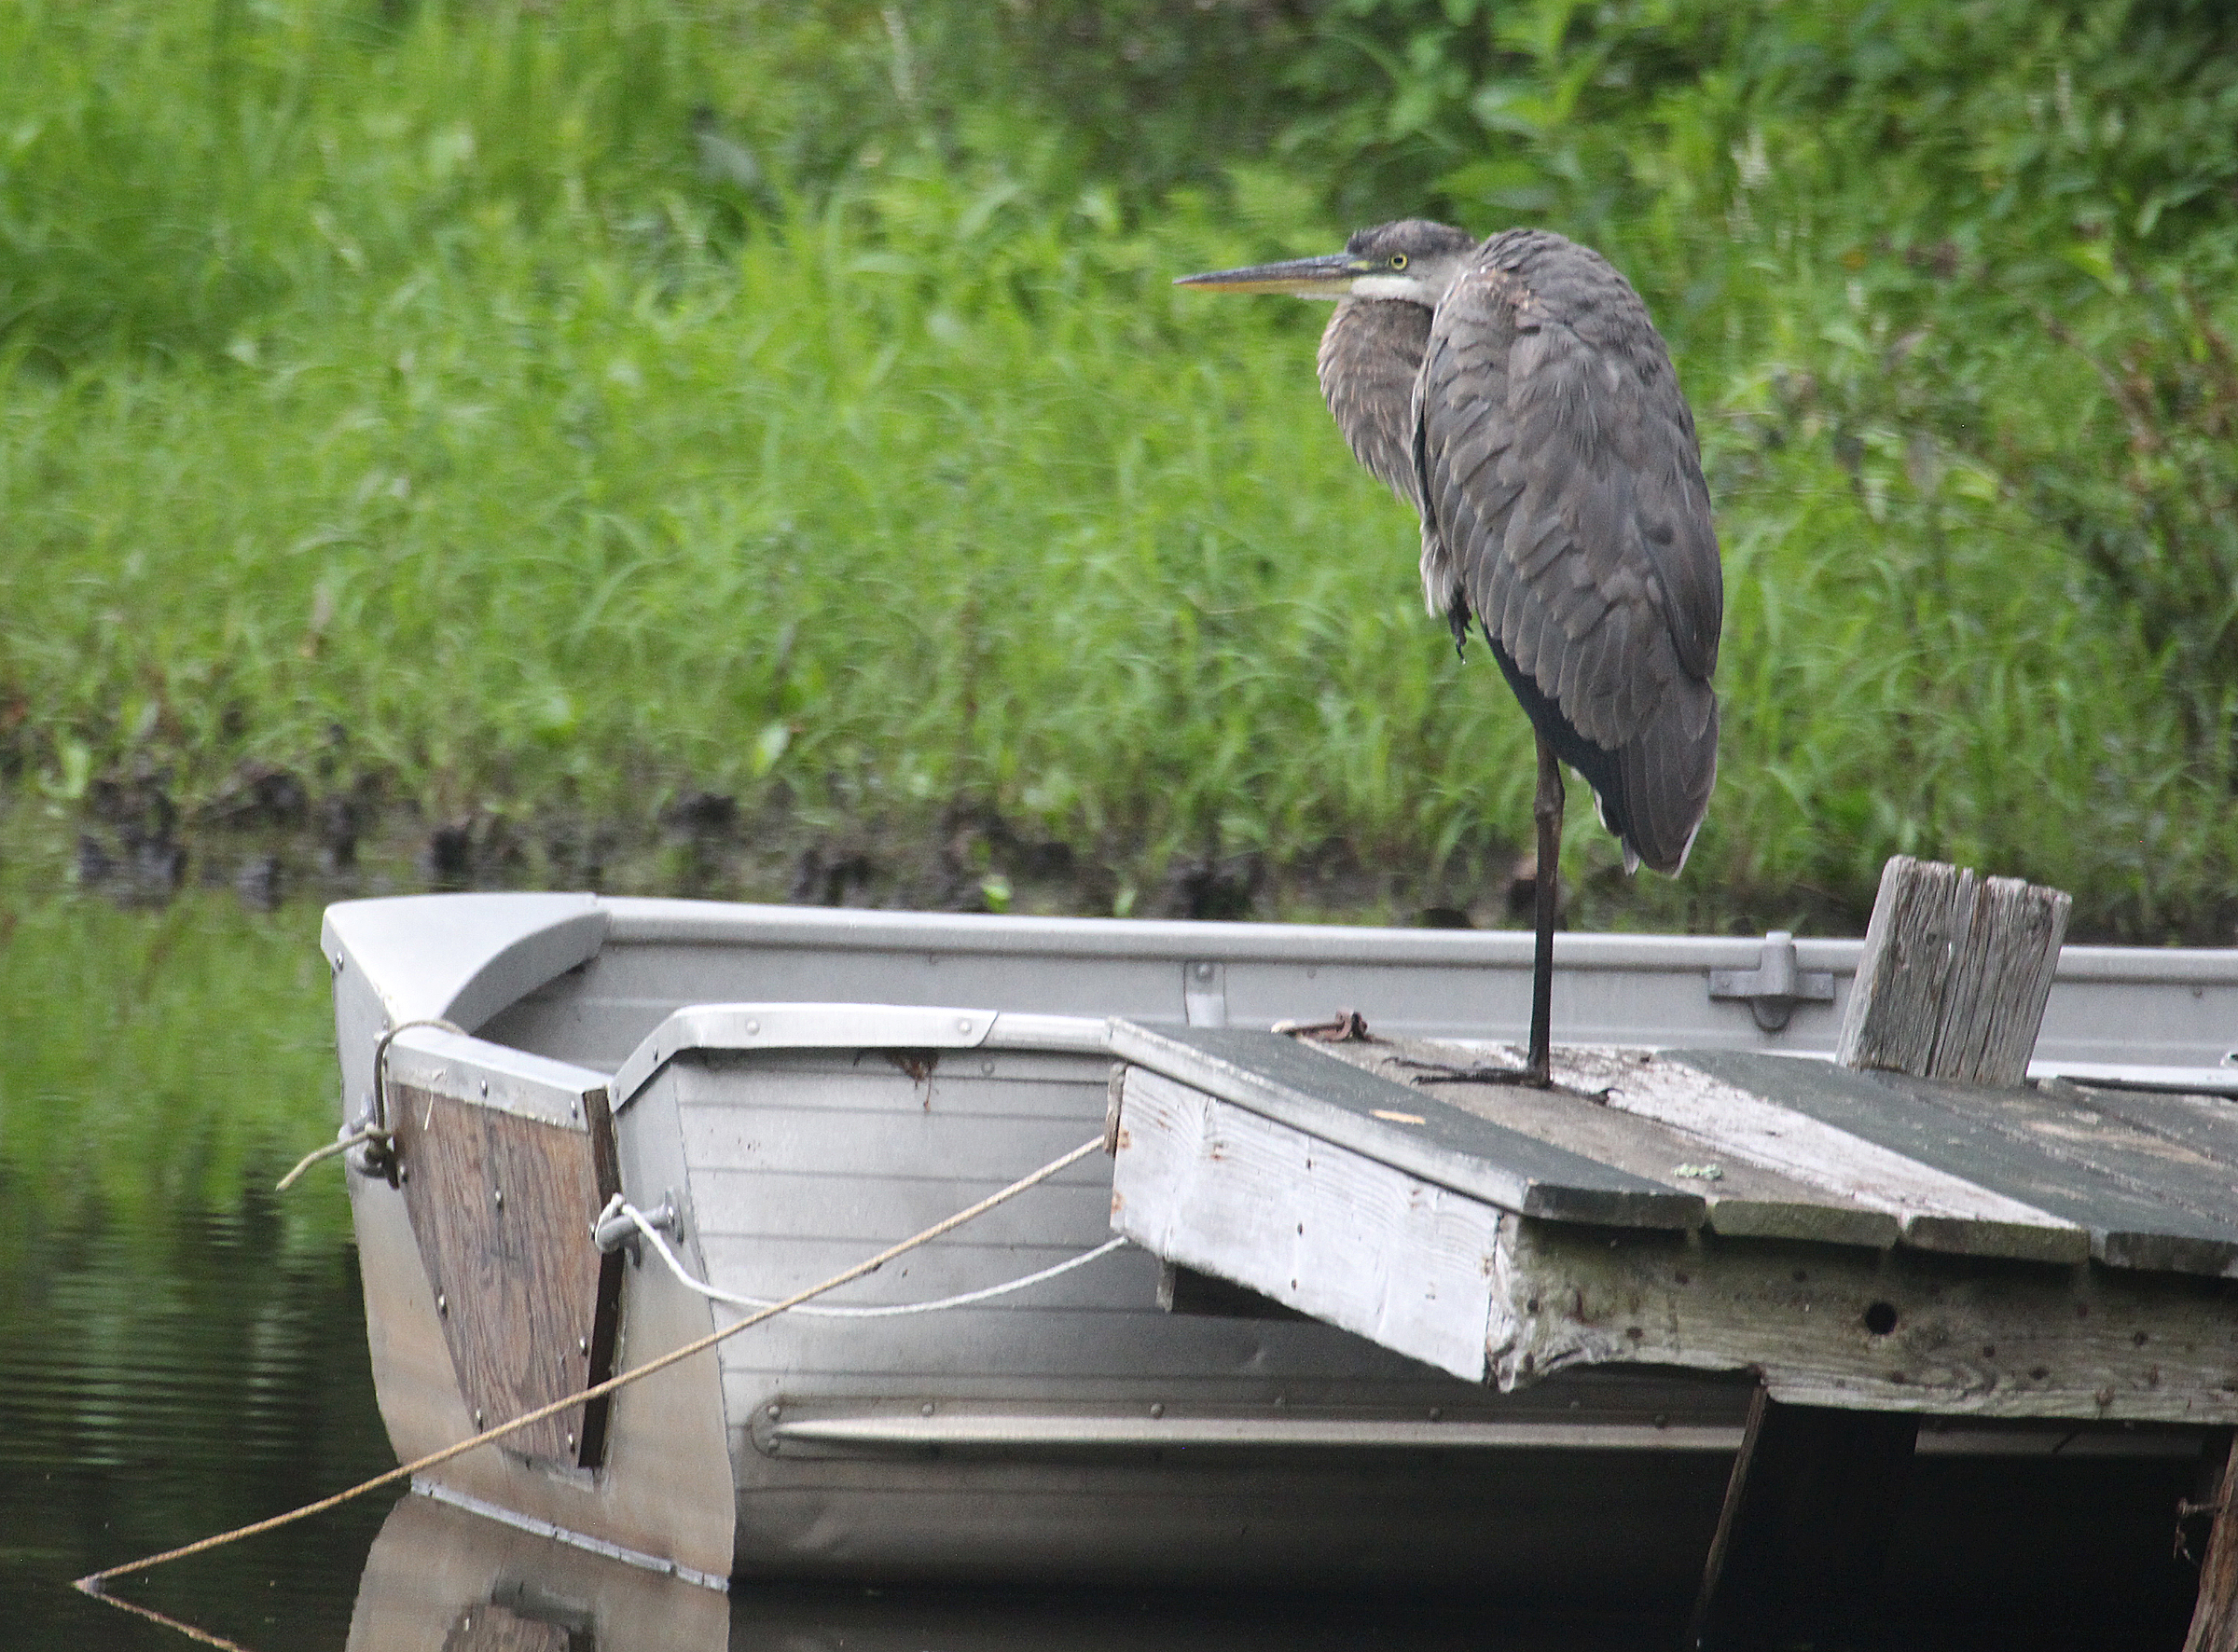 Photo by Chris Bosak A great blue heron stands on a dock at Lake Waubeeka in Danbury, Conn., during the summer of 2017.